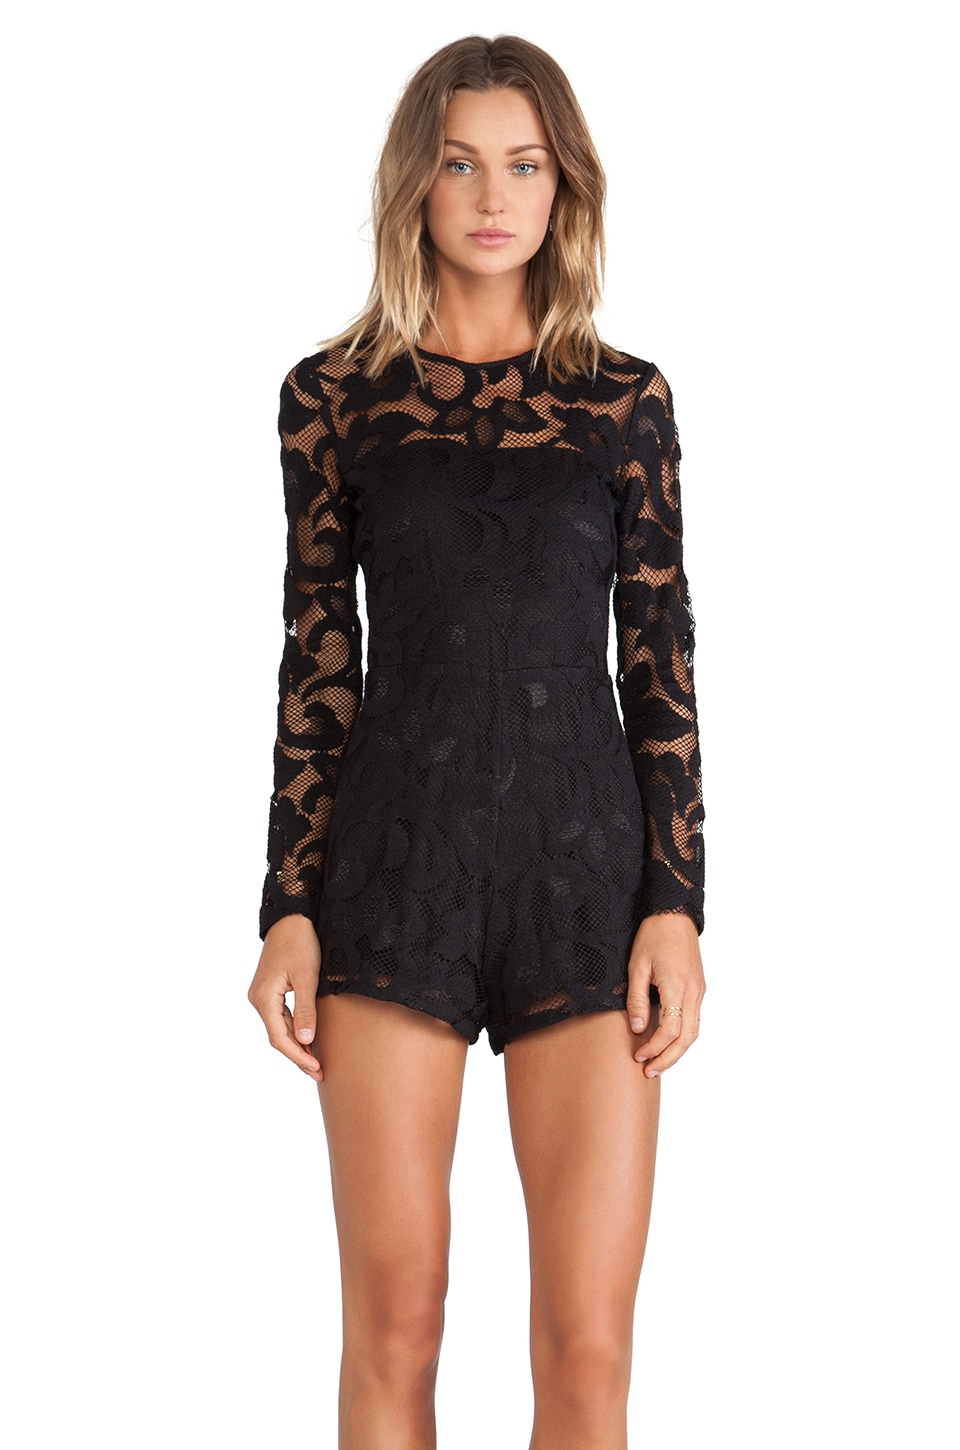 Alexis Montreuil Lace Romper in Black